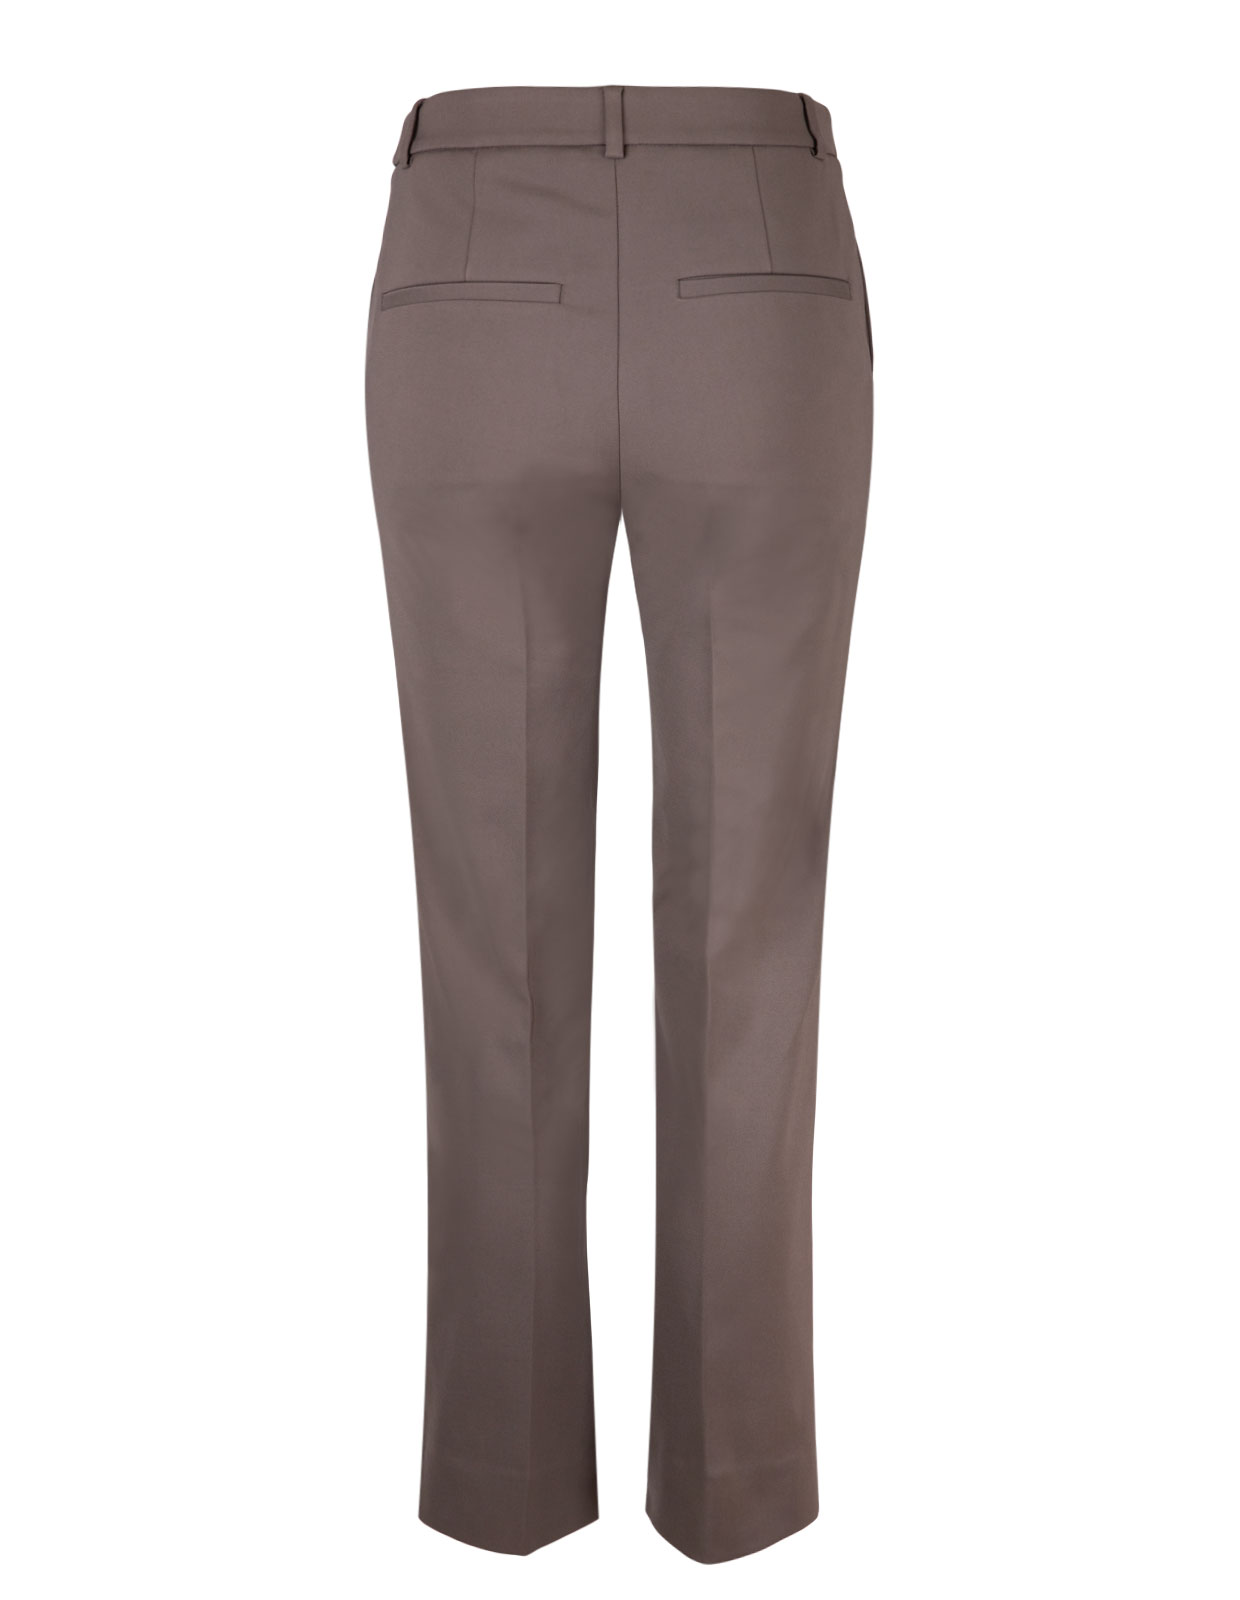 Noora 3 Trousers Mud